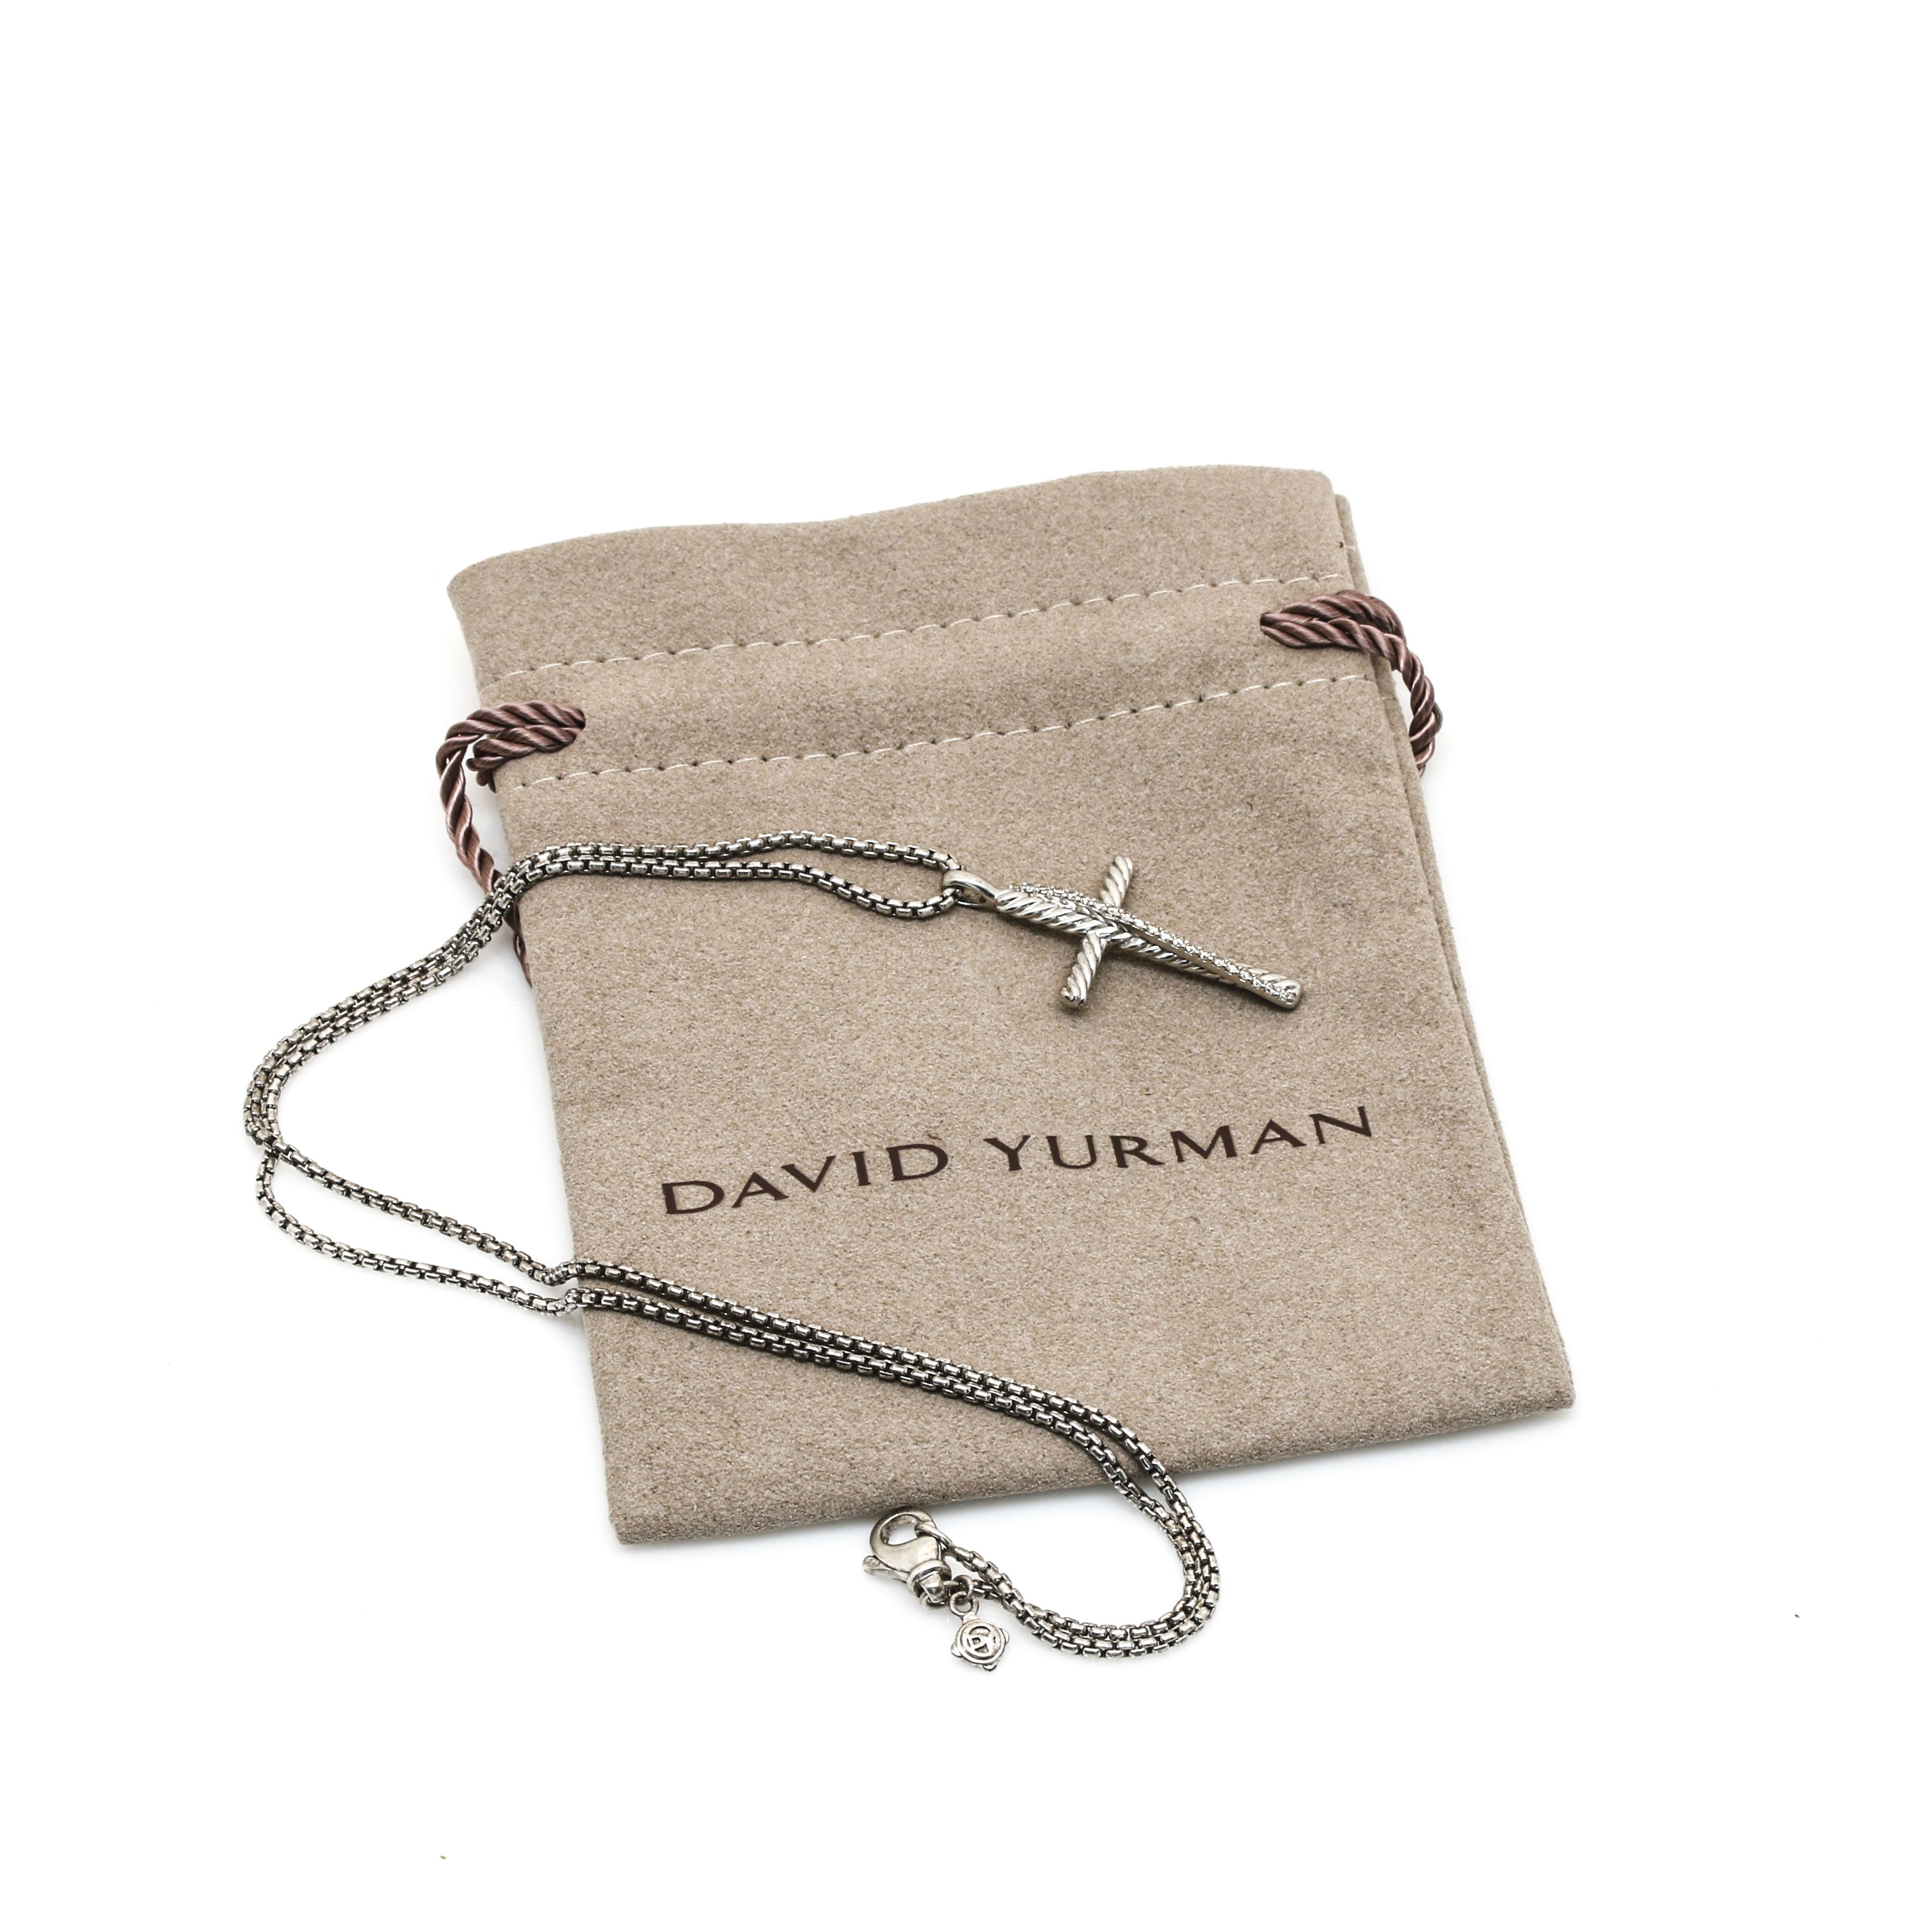 David Yurman Crossover Collection Sterling Silver Diamond Cross Necklace